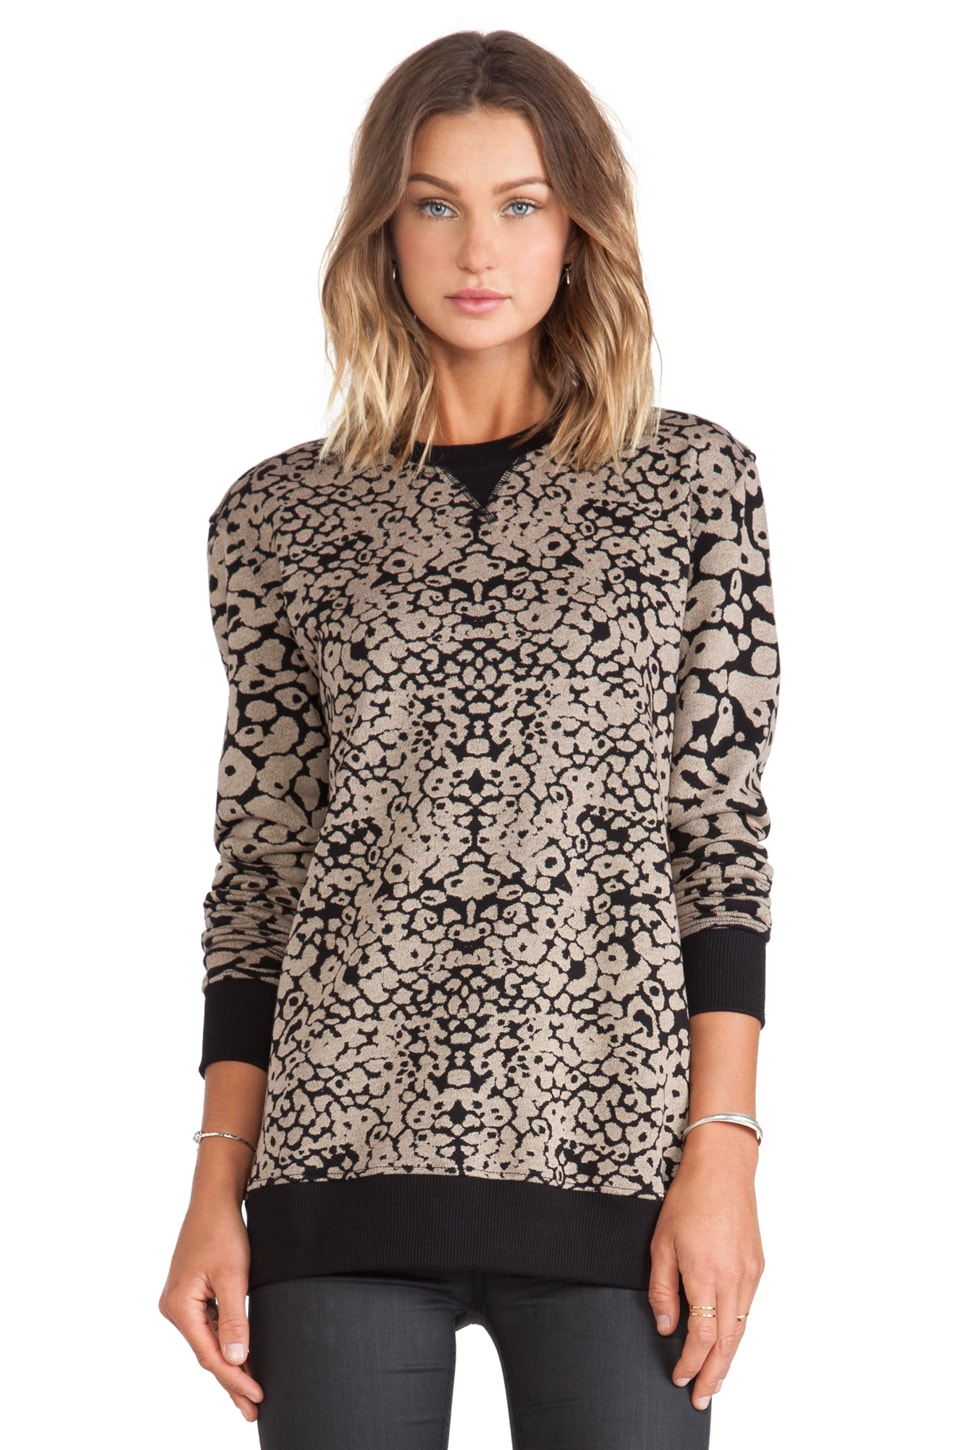 rag & bone/JEAN Amoeba Print Sweatshirt in Black